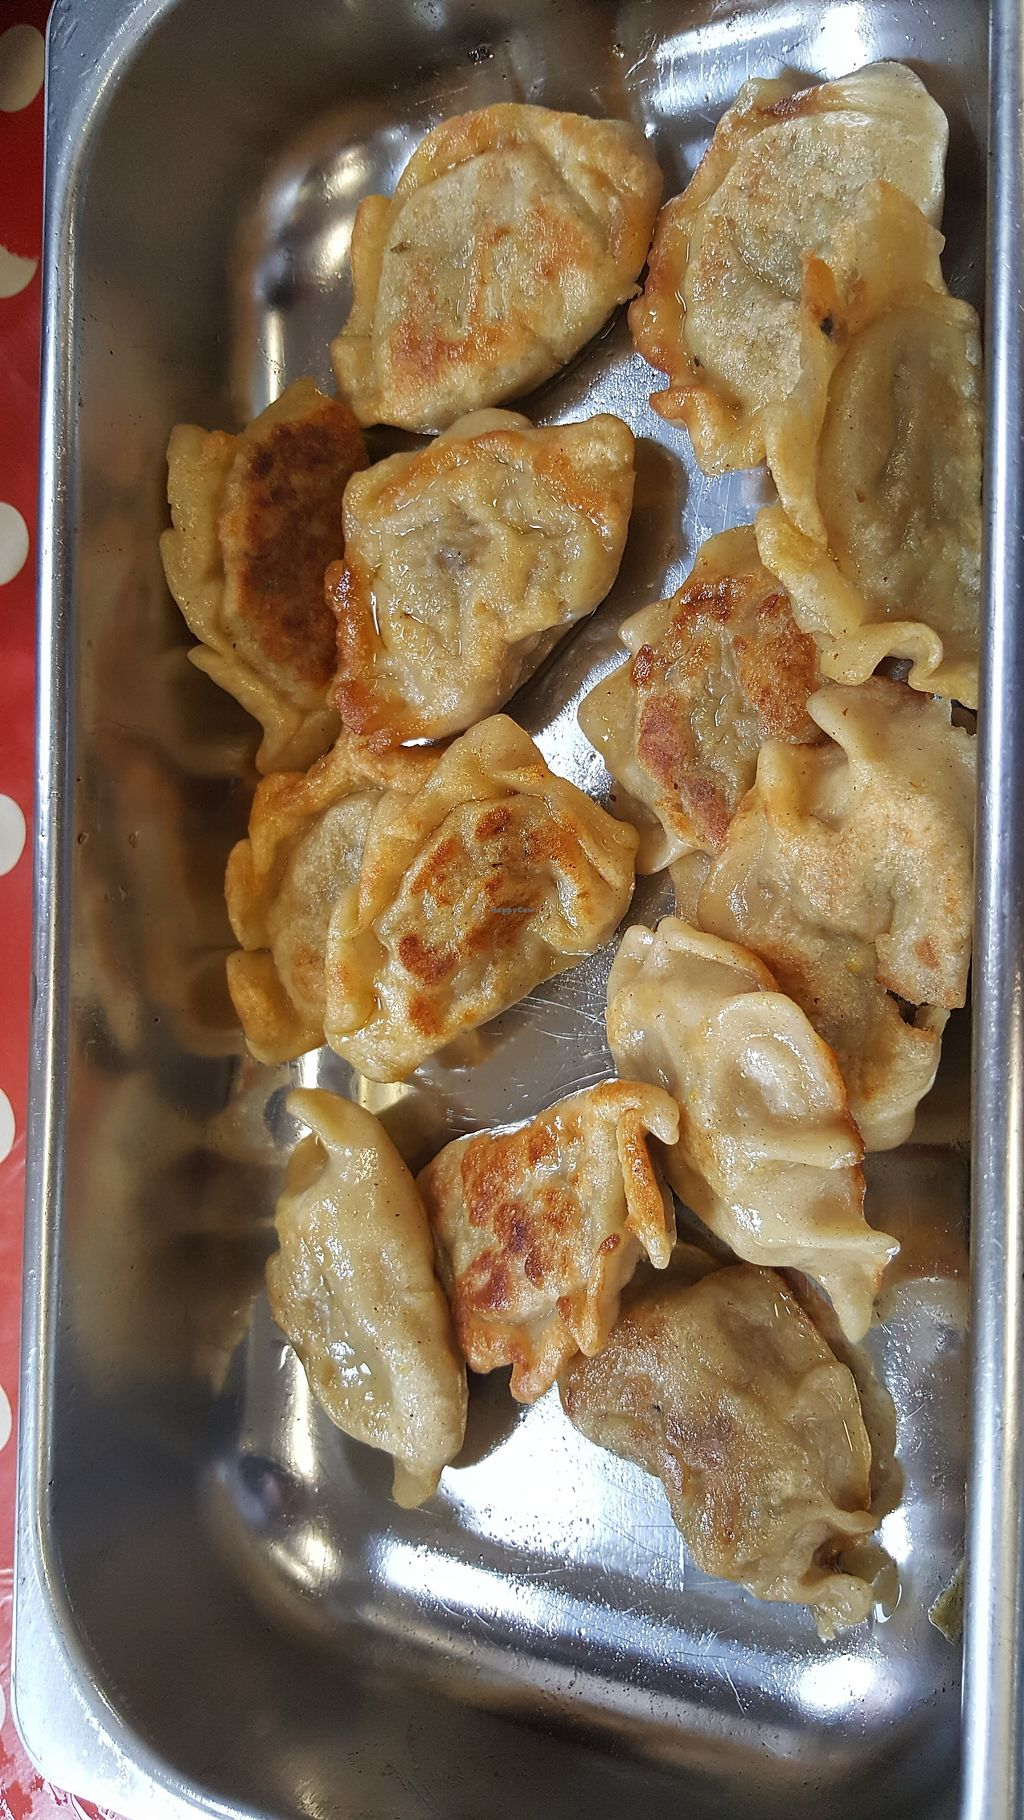 "Photo of Olo Kitchen  by <a href=""/members/profile/Clare"">Clare</a> <br/>Dumplings <br/> July 30, 2017  - <a href='/contact/abuse/image/97498/286776'>Report</a>"